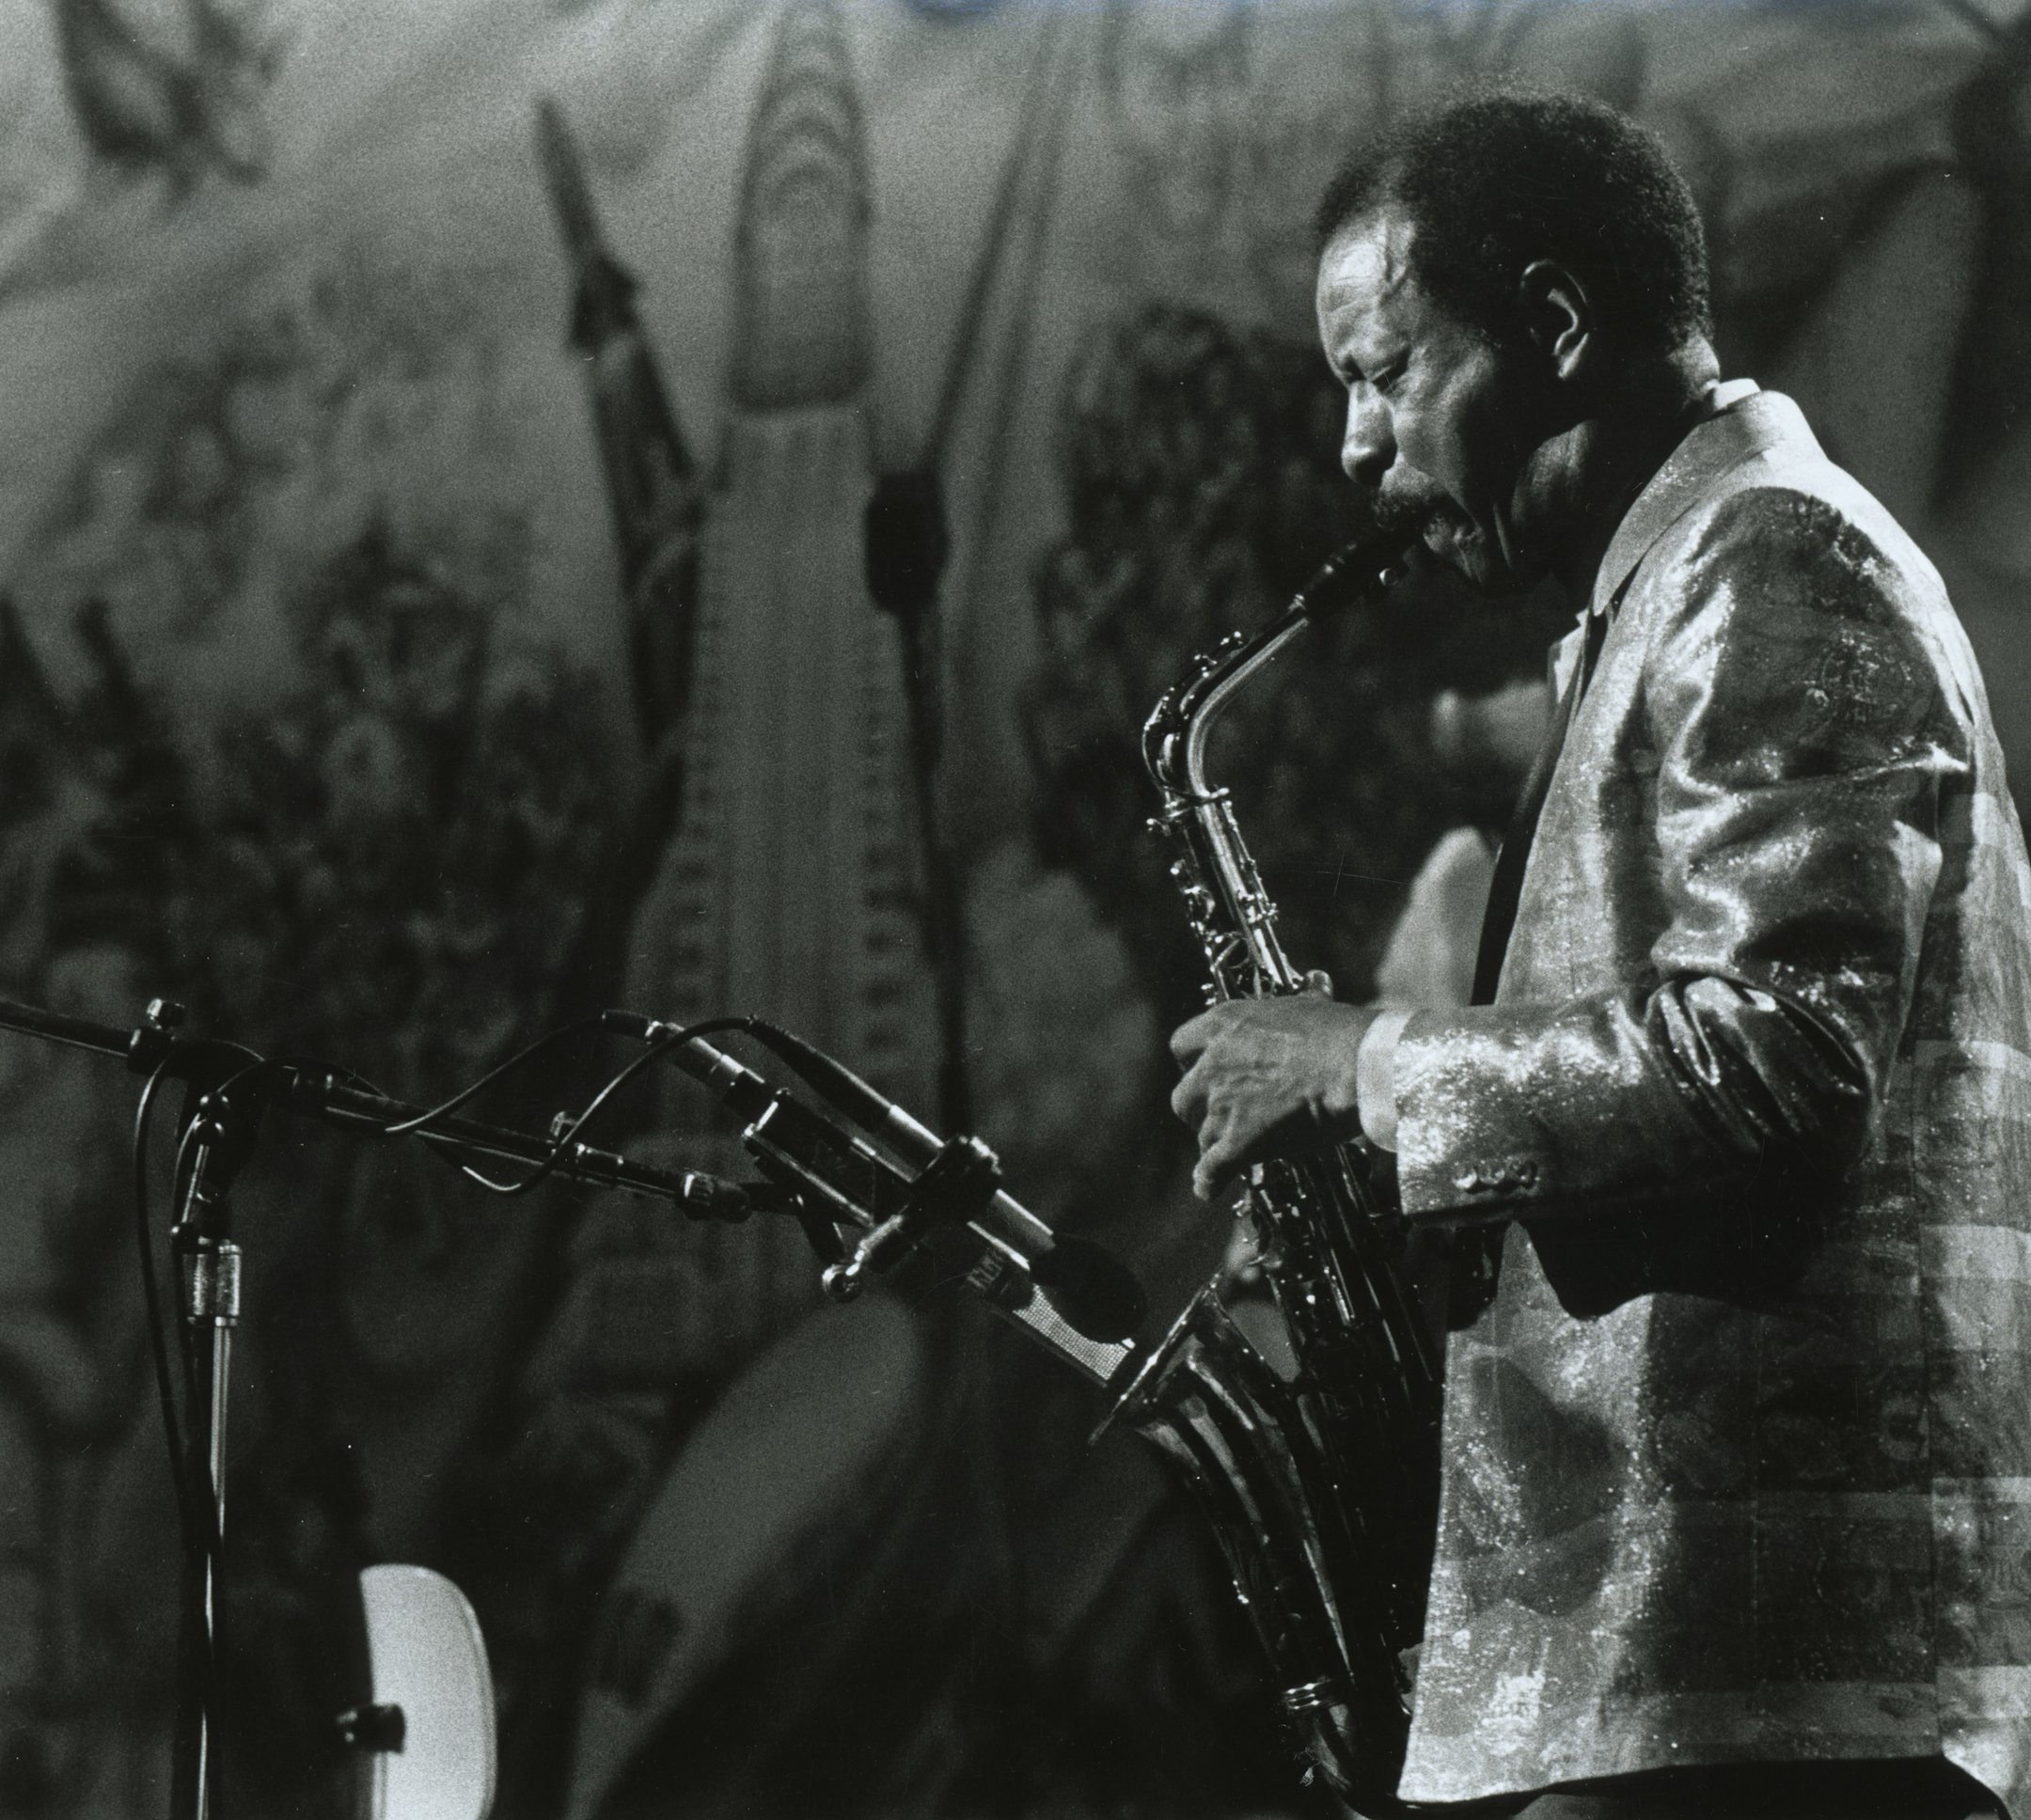 Ornette Coleman in a still from 'Ornette: Made in America' (1985)